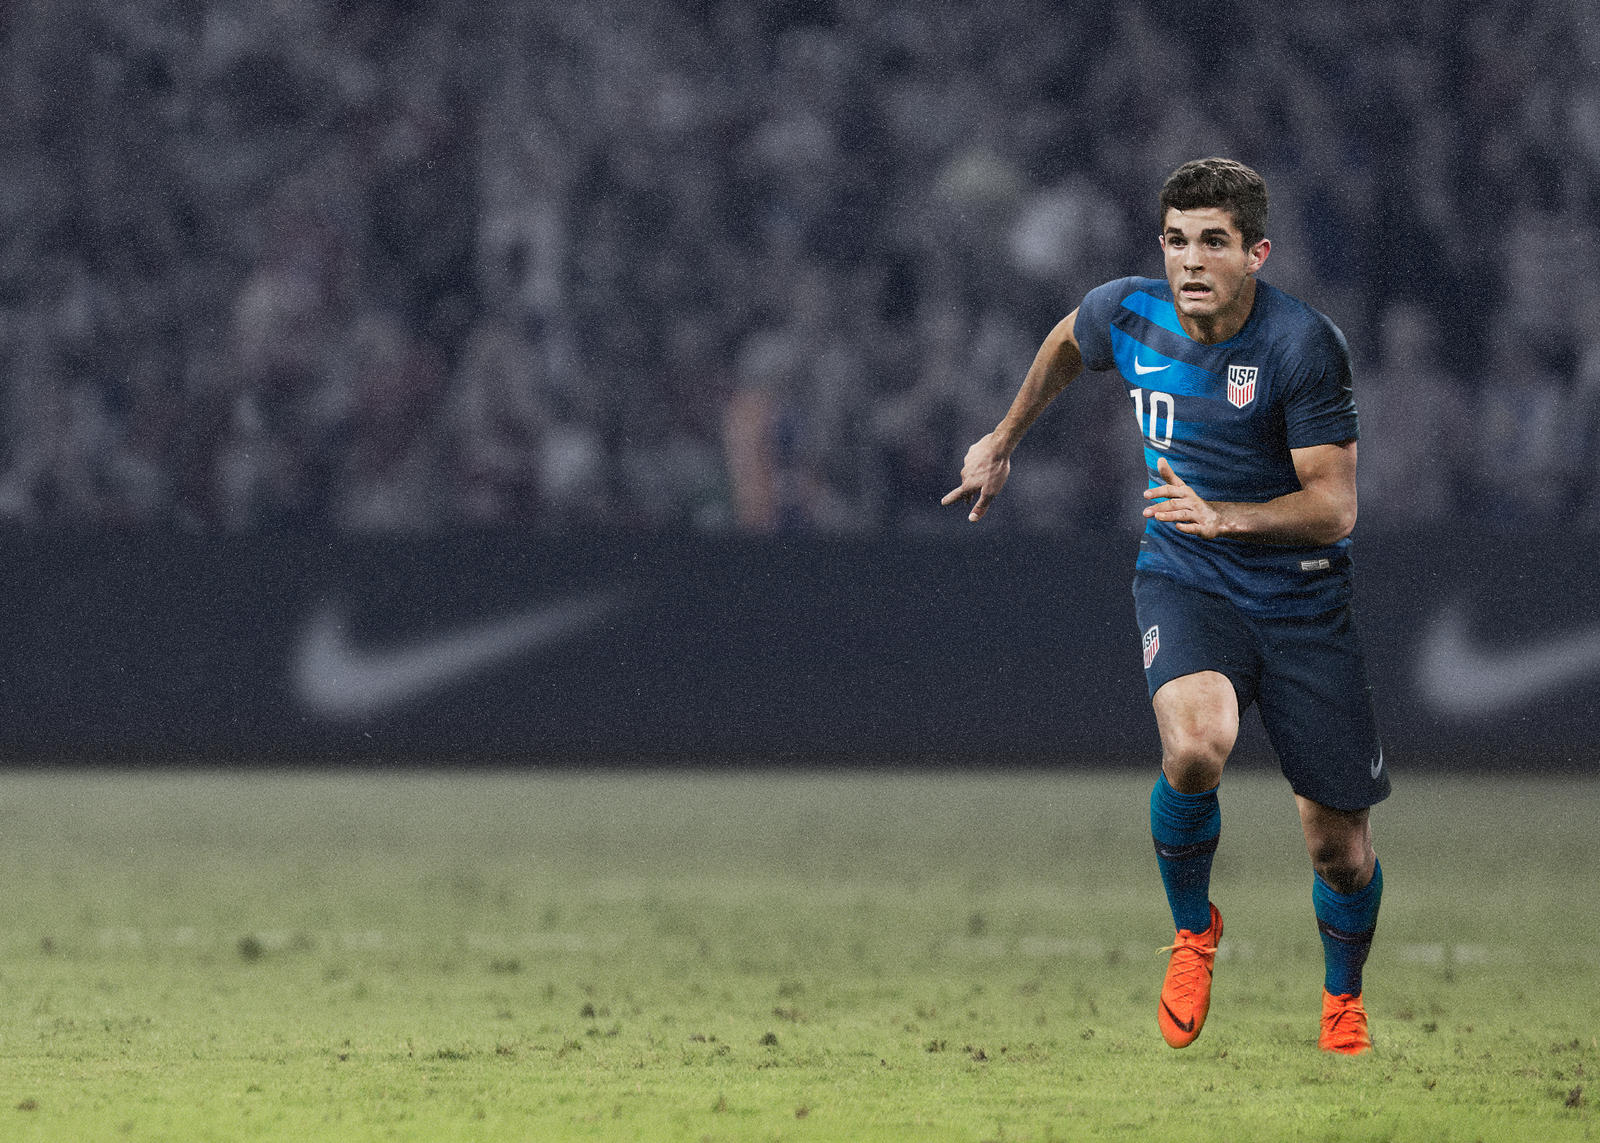 finest selection 33129 2ec0a U.S. Soccer's New Generation Prepares for Launch - Nike News